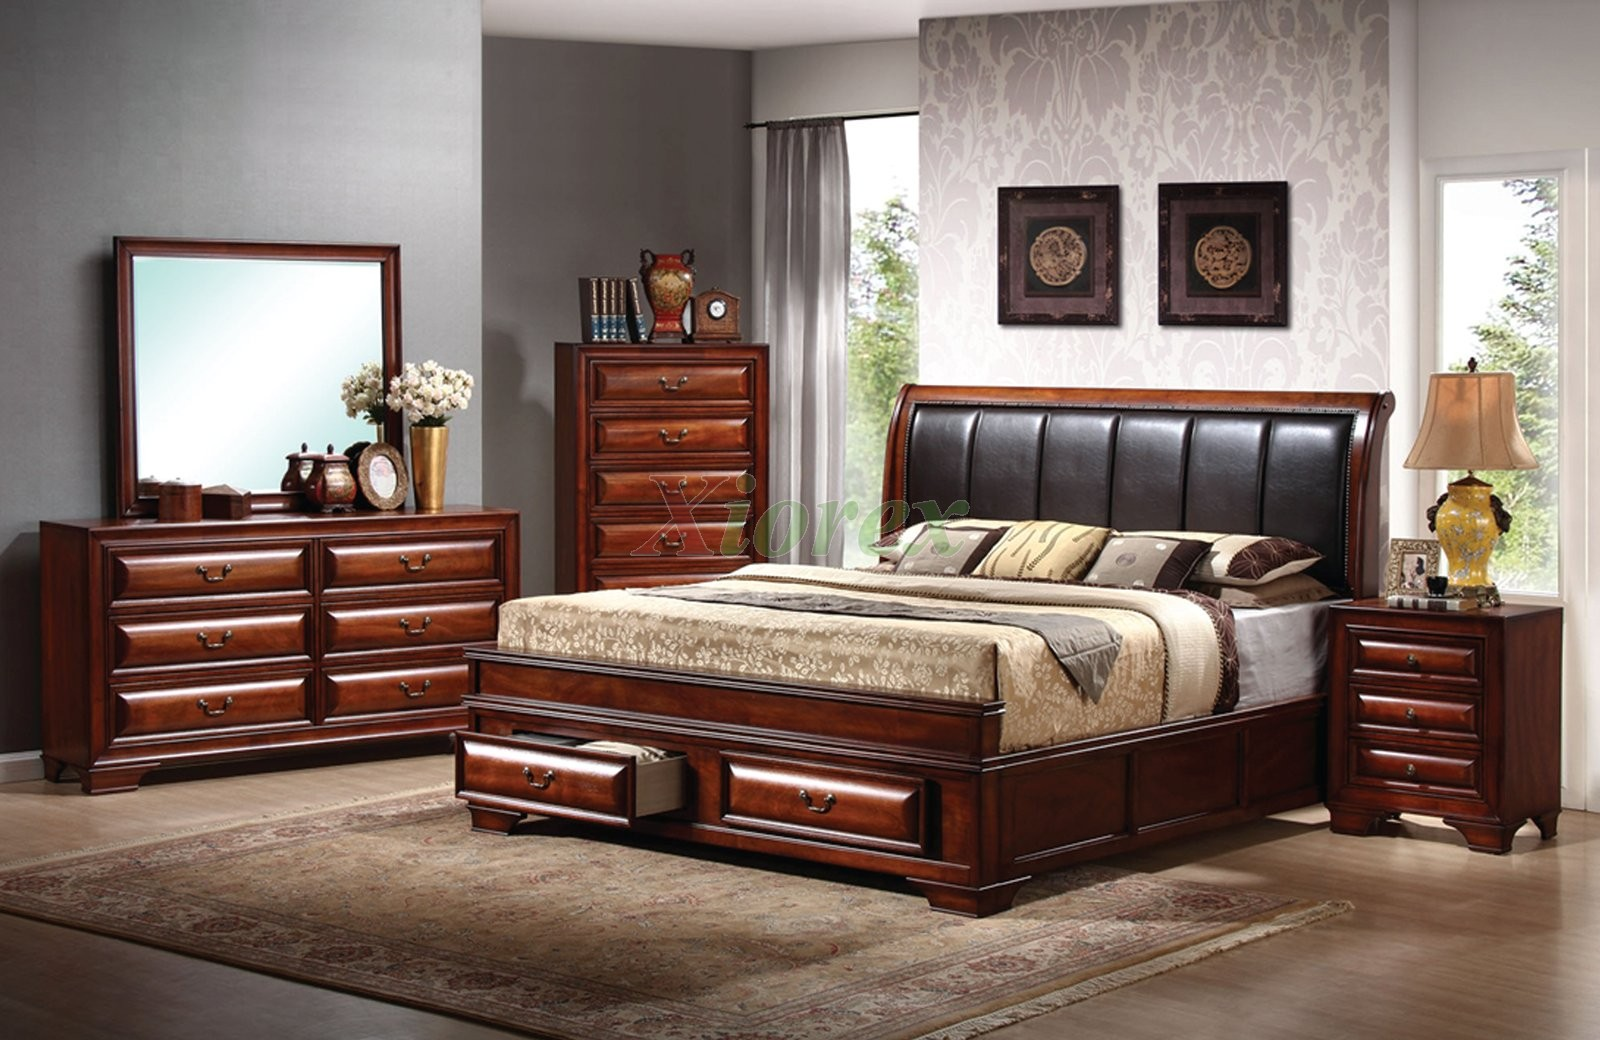 Bed headboard leather - Platform Bedroom Furniture Set With Leather Headboard Beds 115